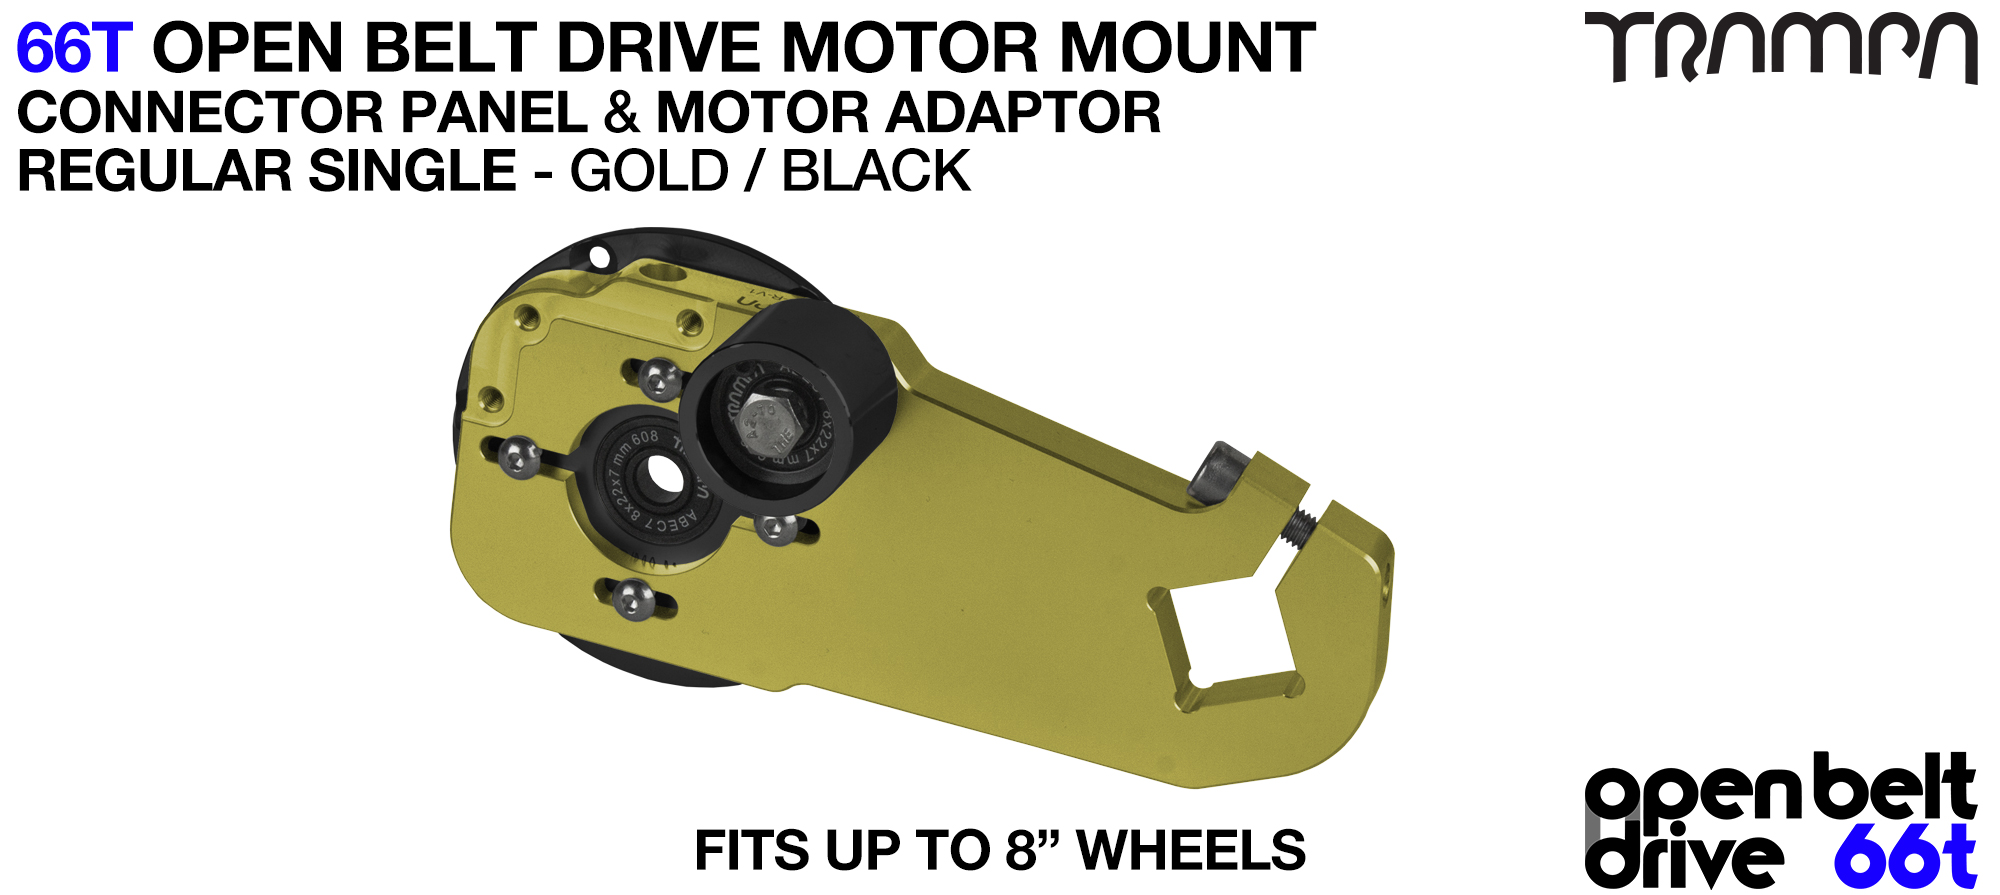 66T OPEN BELT DRIVE Motor Mount & Motor Adaptor - SINGLE GOLD